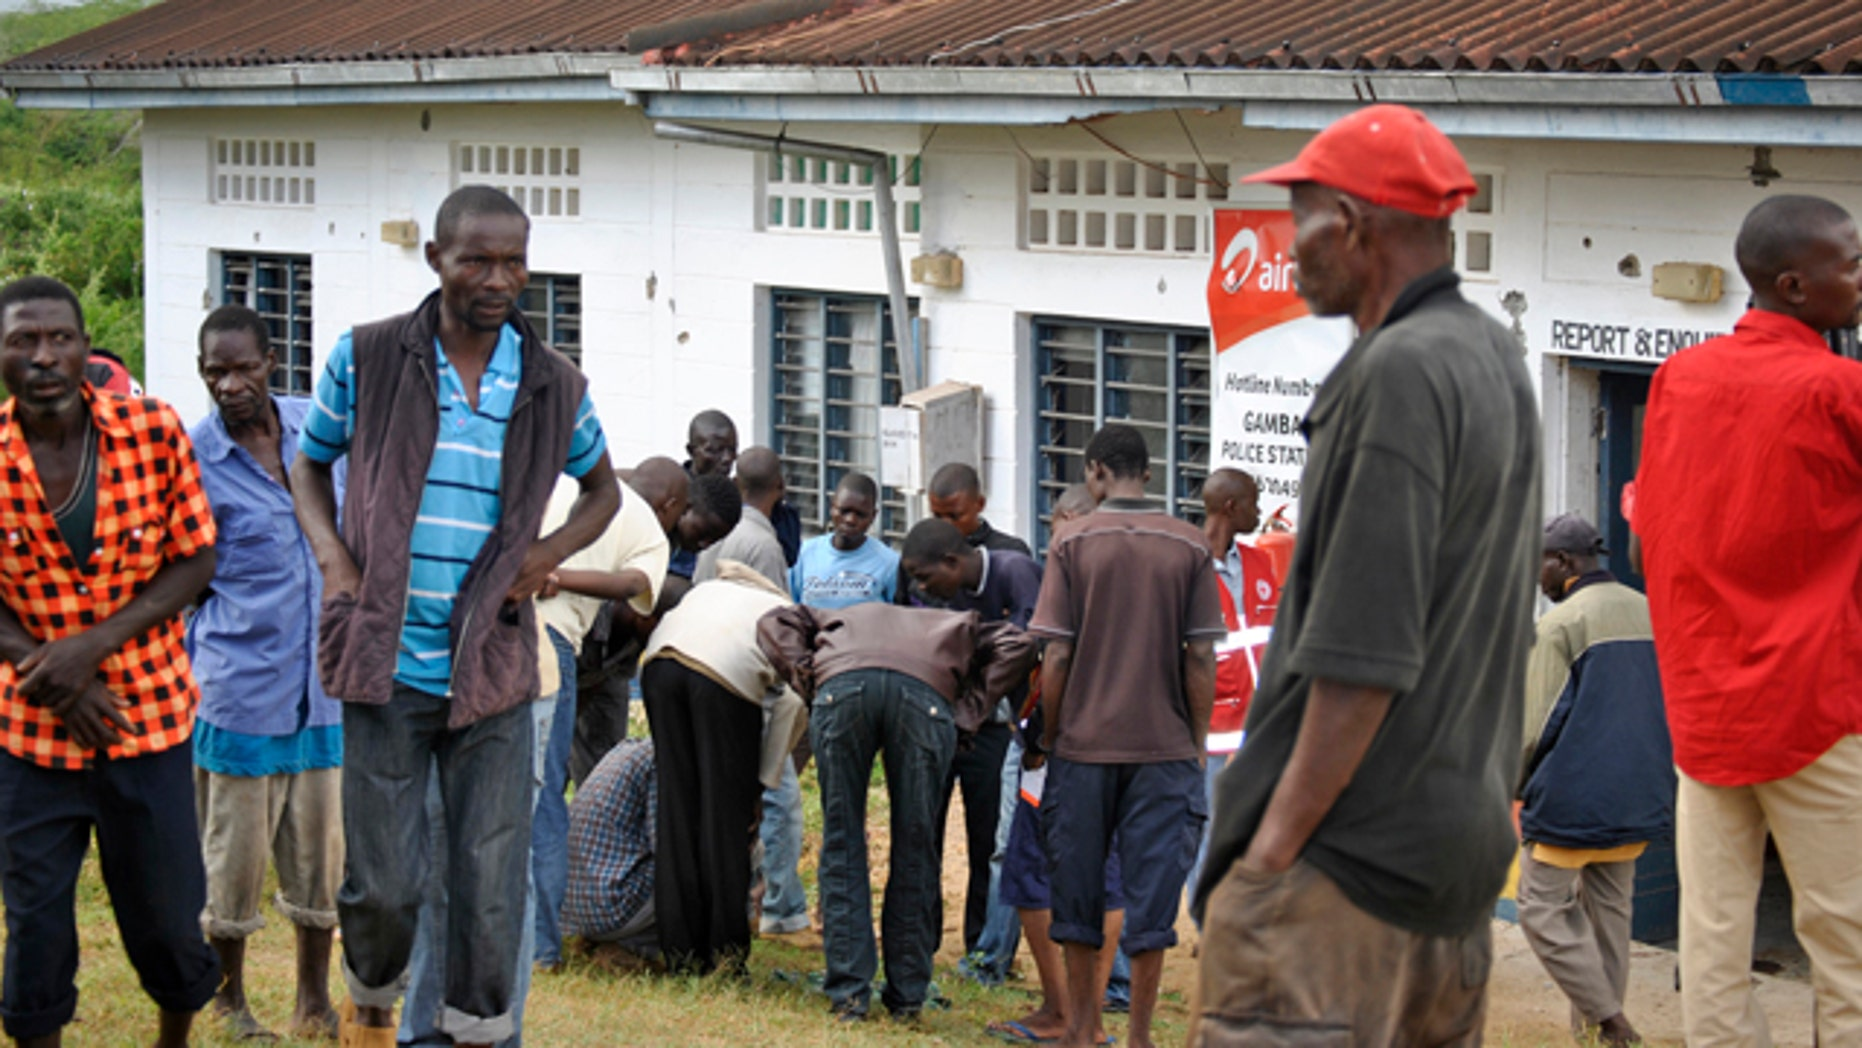 July 6, 2014: People watch the site where gunmen attacked outside the Gamba police station in Gamba, Kenya. (AP Photo)